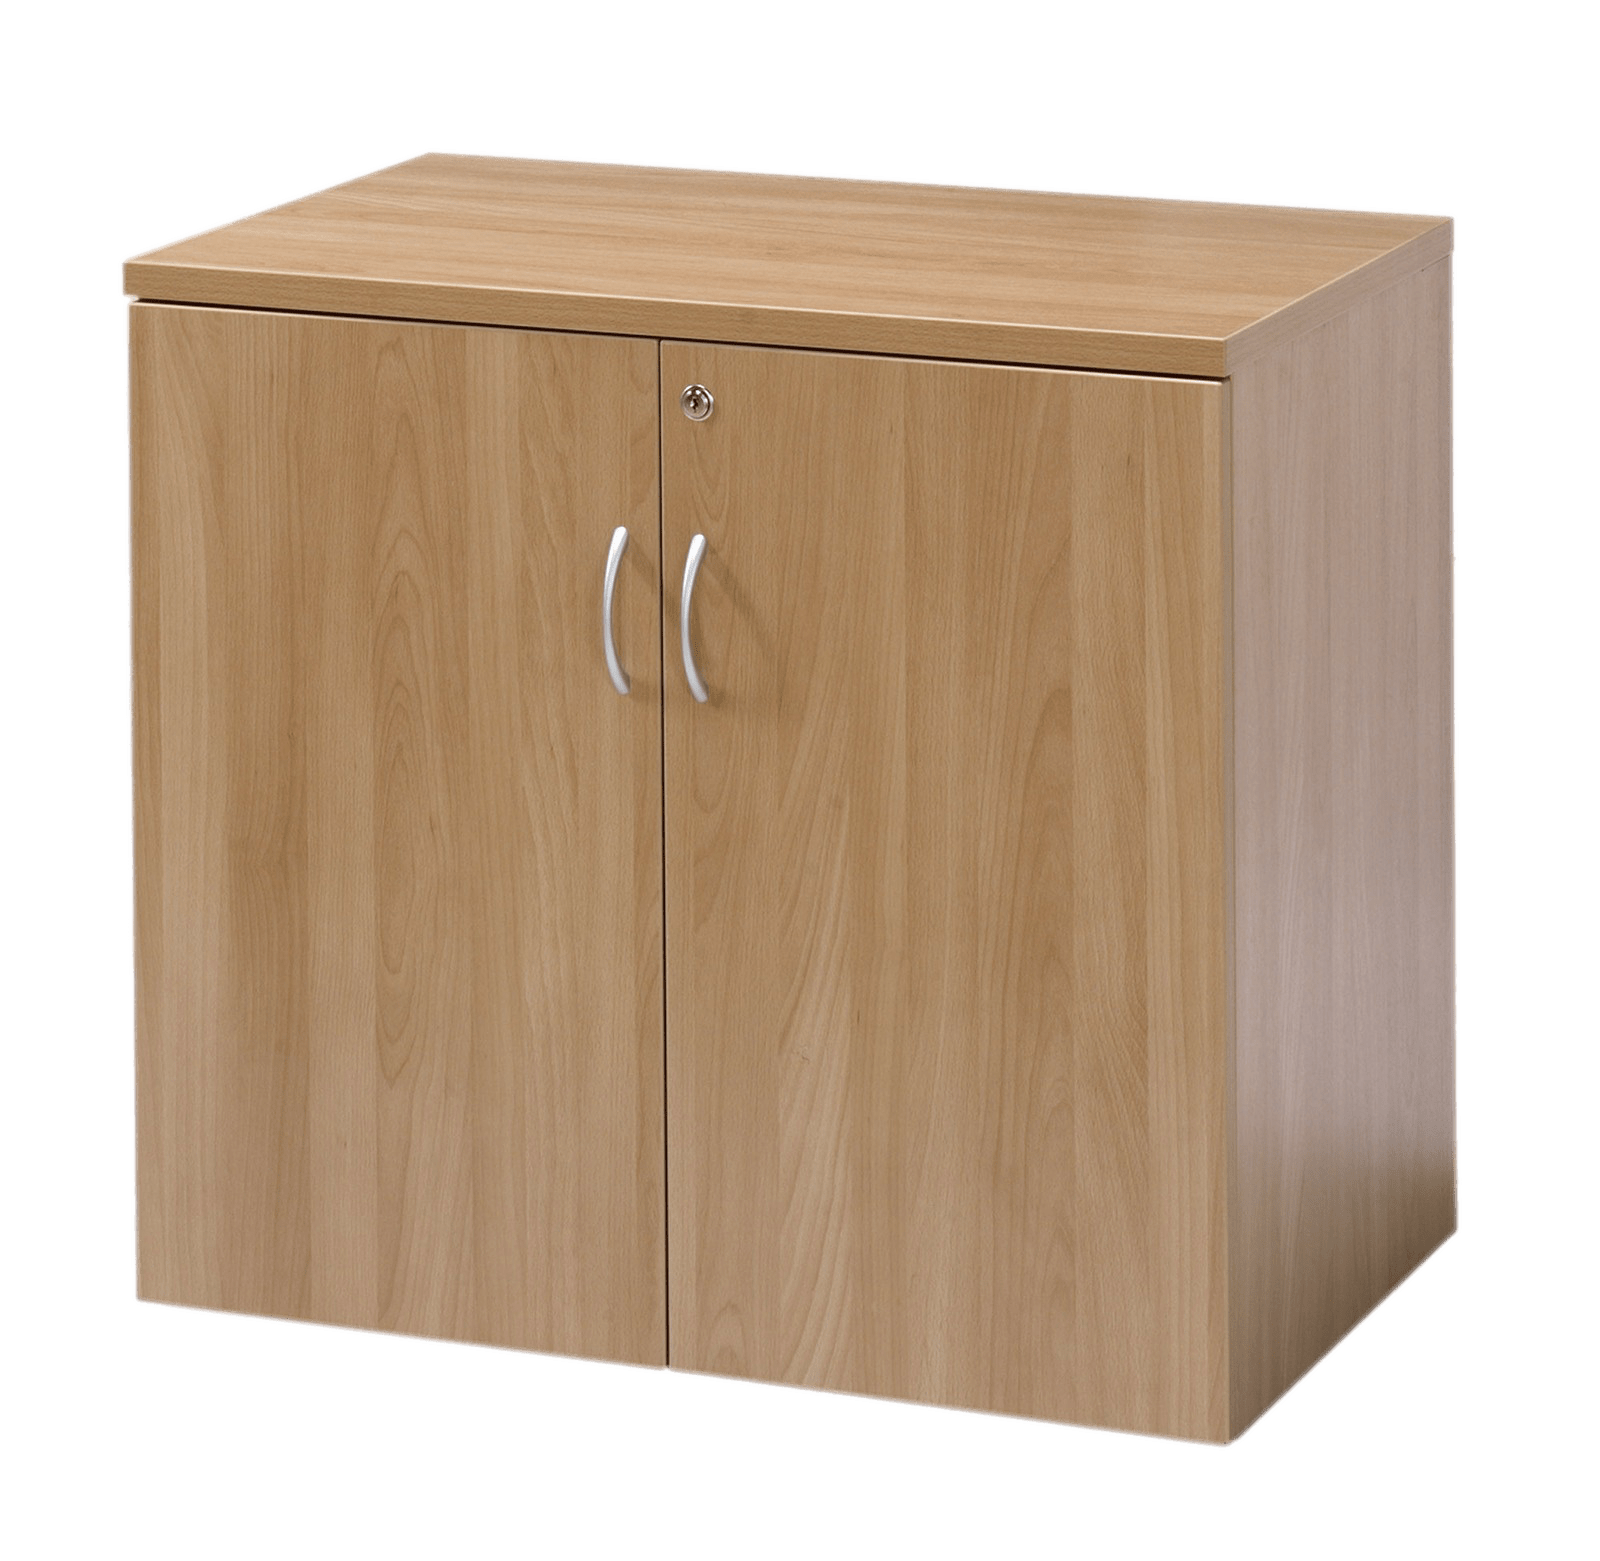 vector black and white download Wooden Office Cupboard transparent PNG